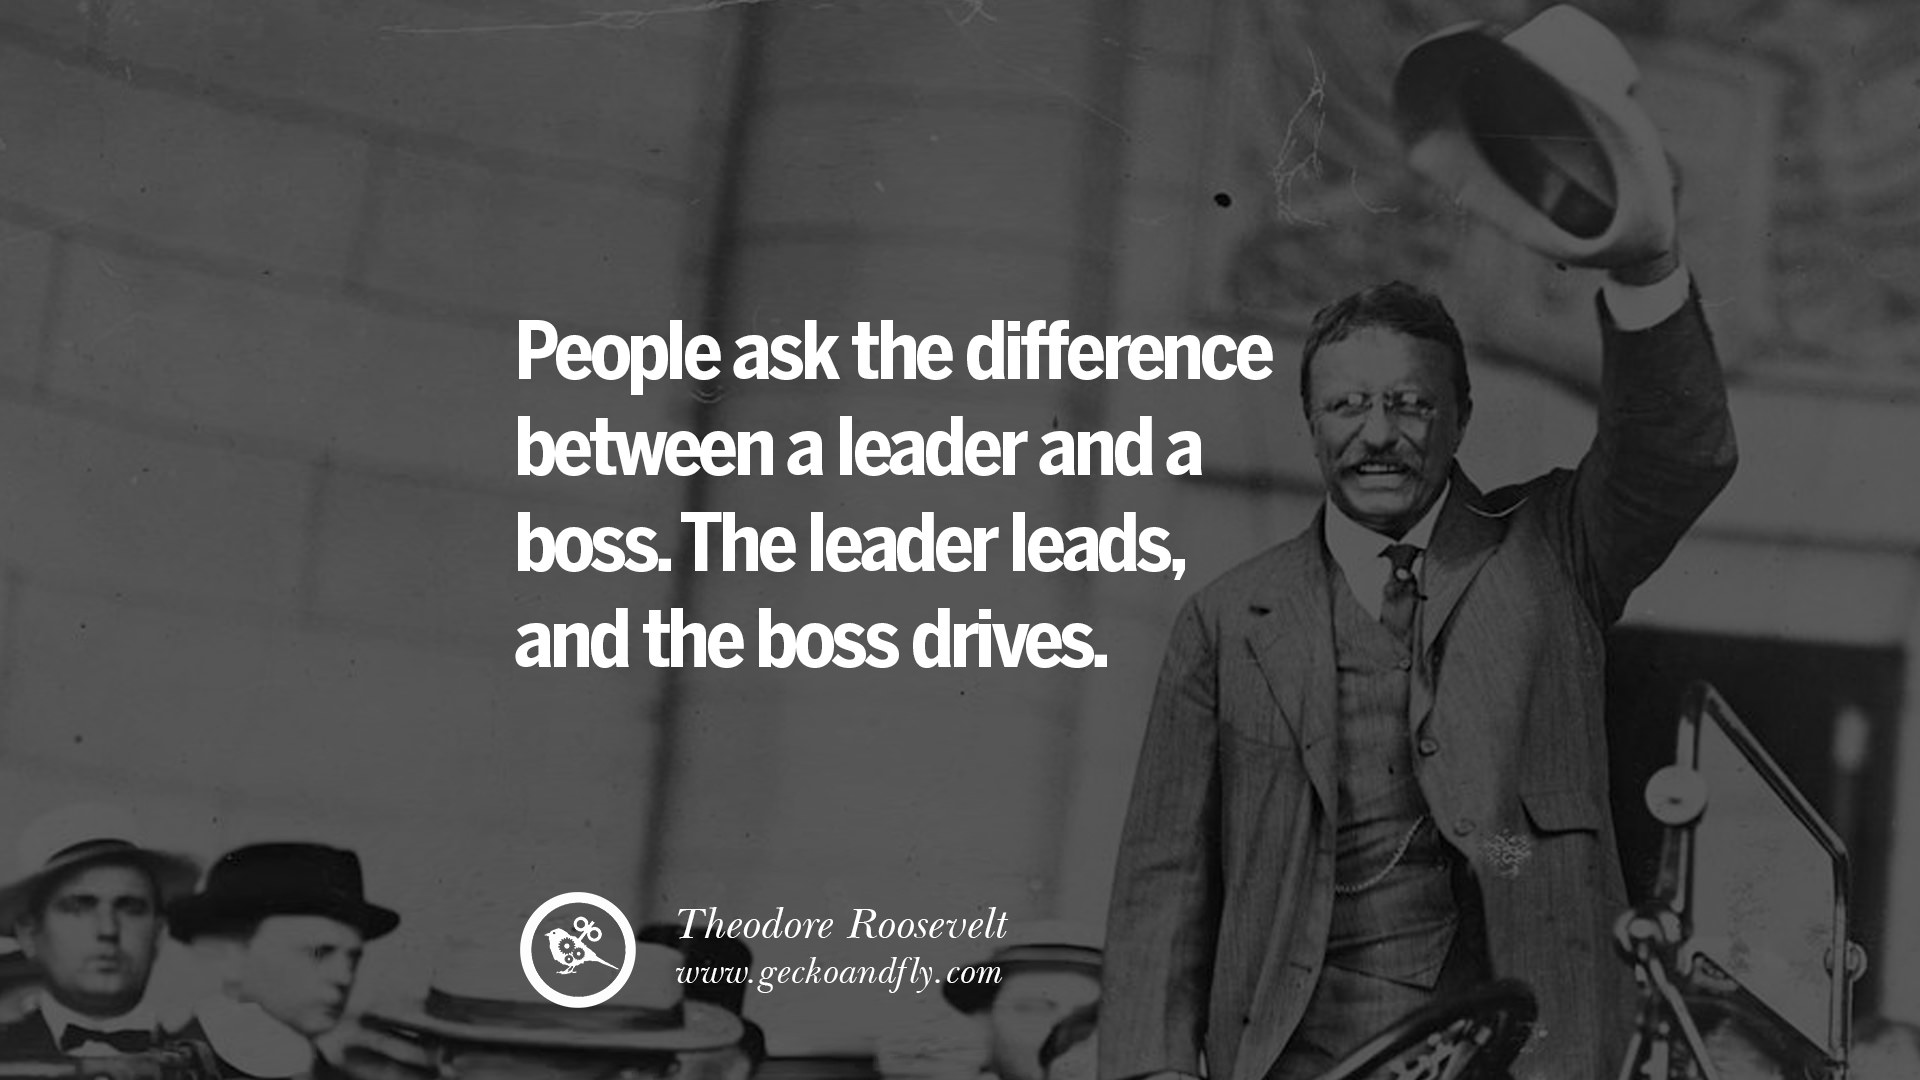 18 uplifting and motivational quotes on management leadership people ask the difference between a leader and a boss the leader leads and the boss drives theodore roosevelt